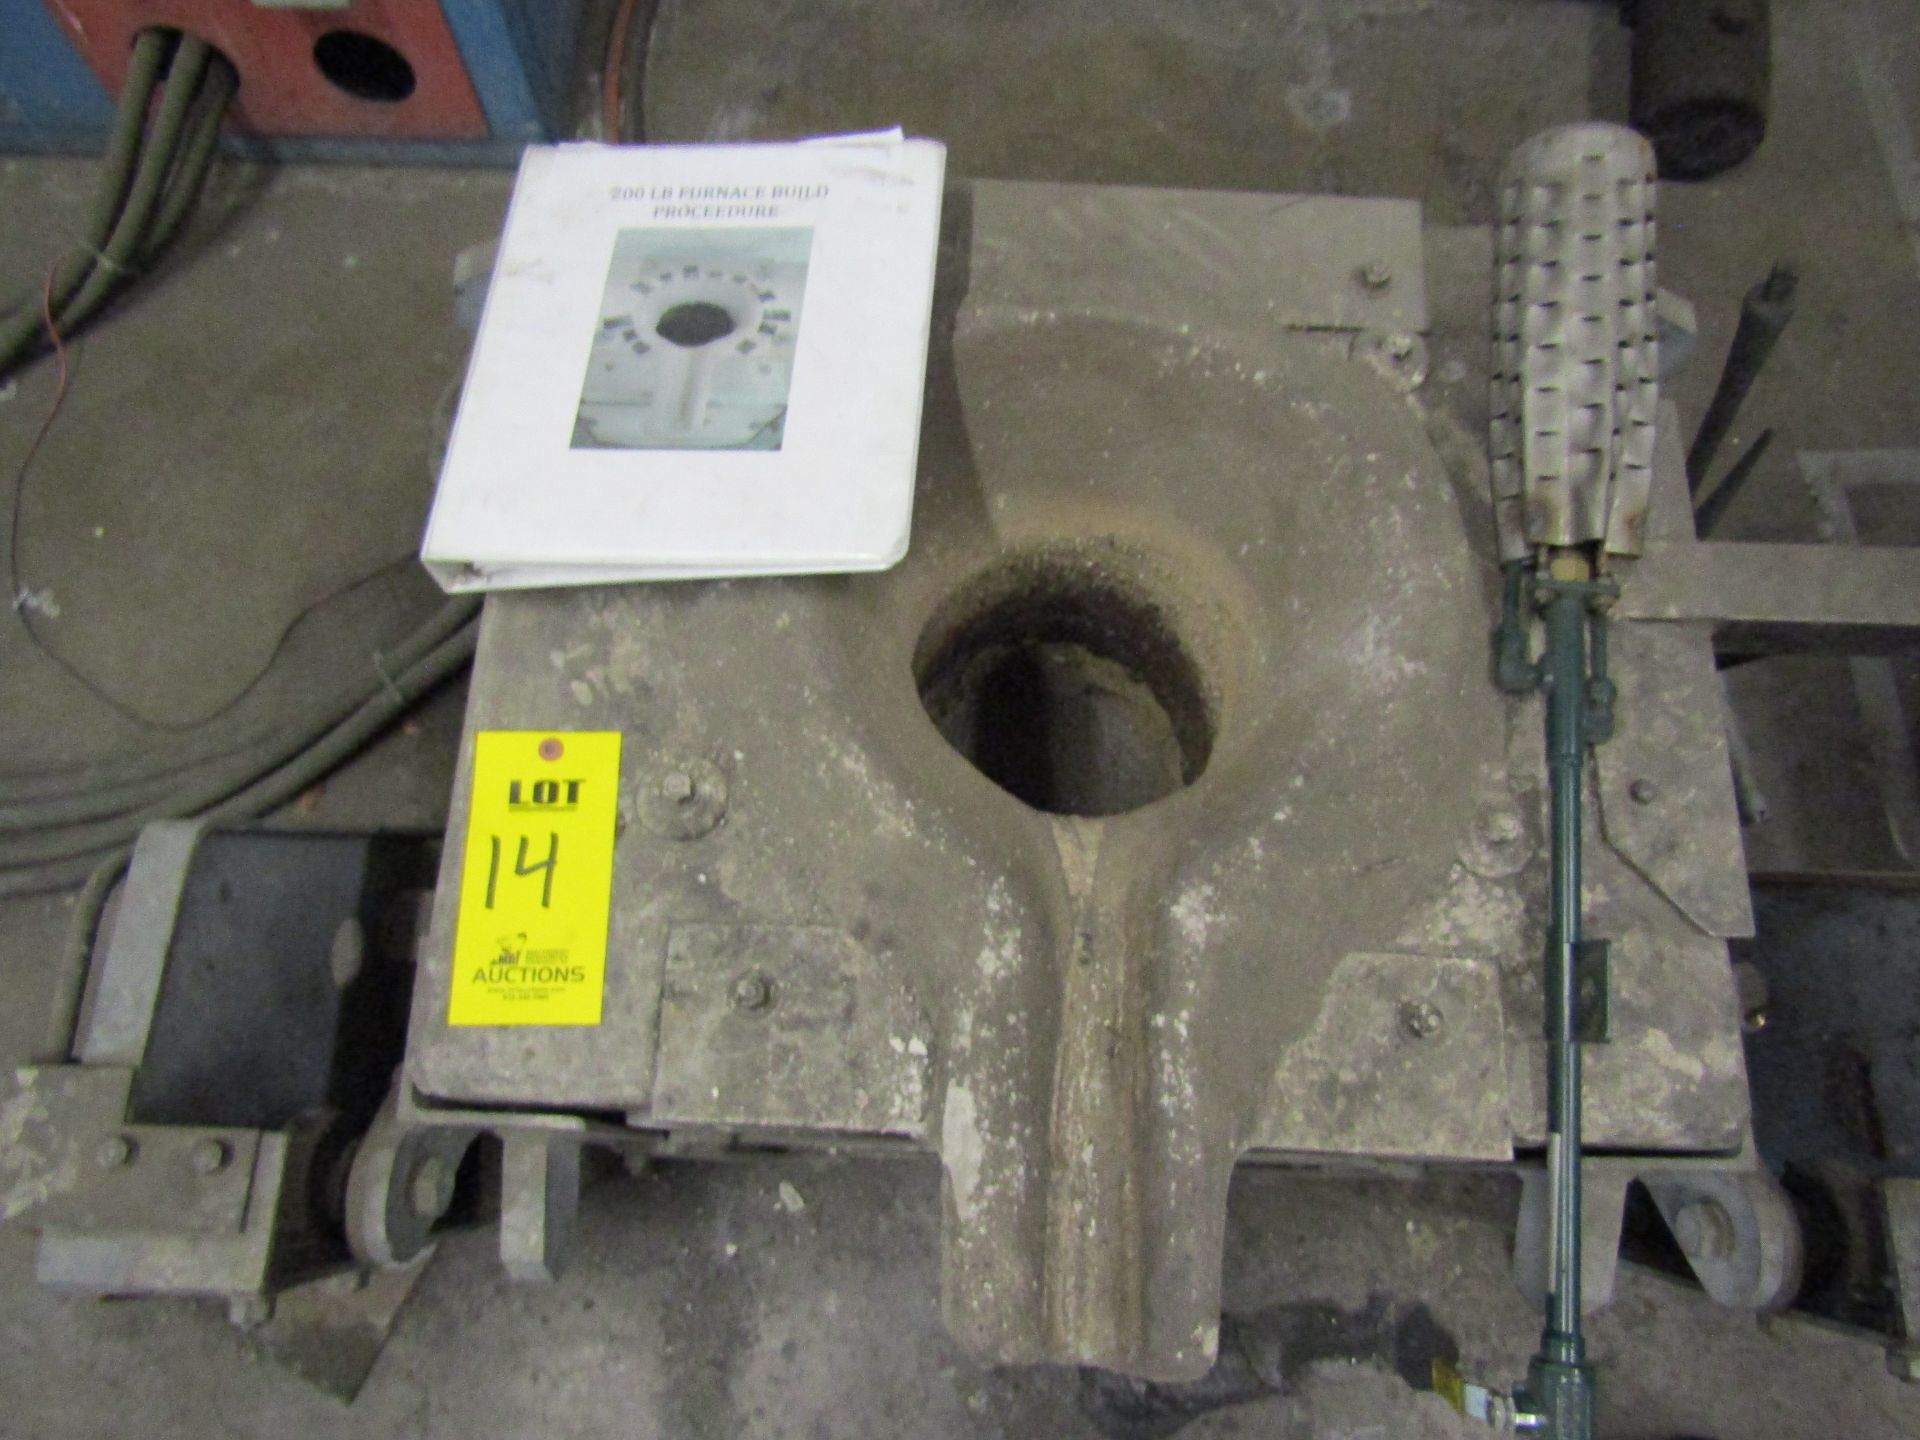 Lot 14 - ITC Induction Furnace, Power Cube #1, Box Type, Hydraulic Tilt, And Stanchions with Two Hydraulic